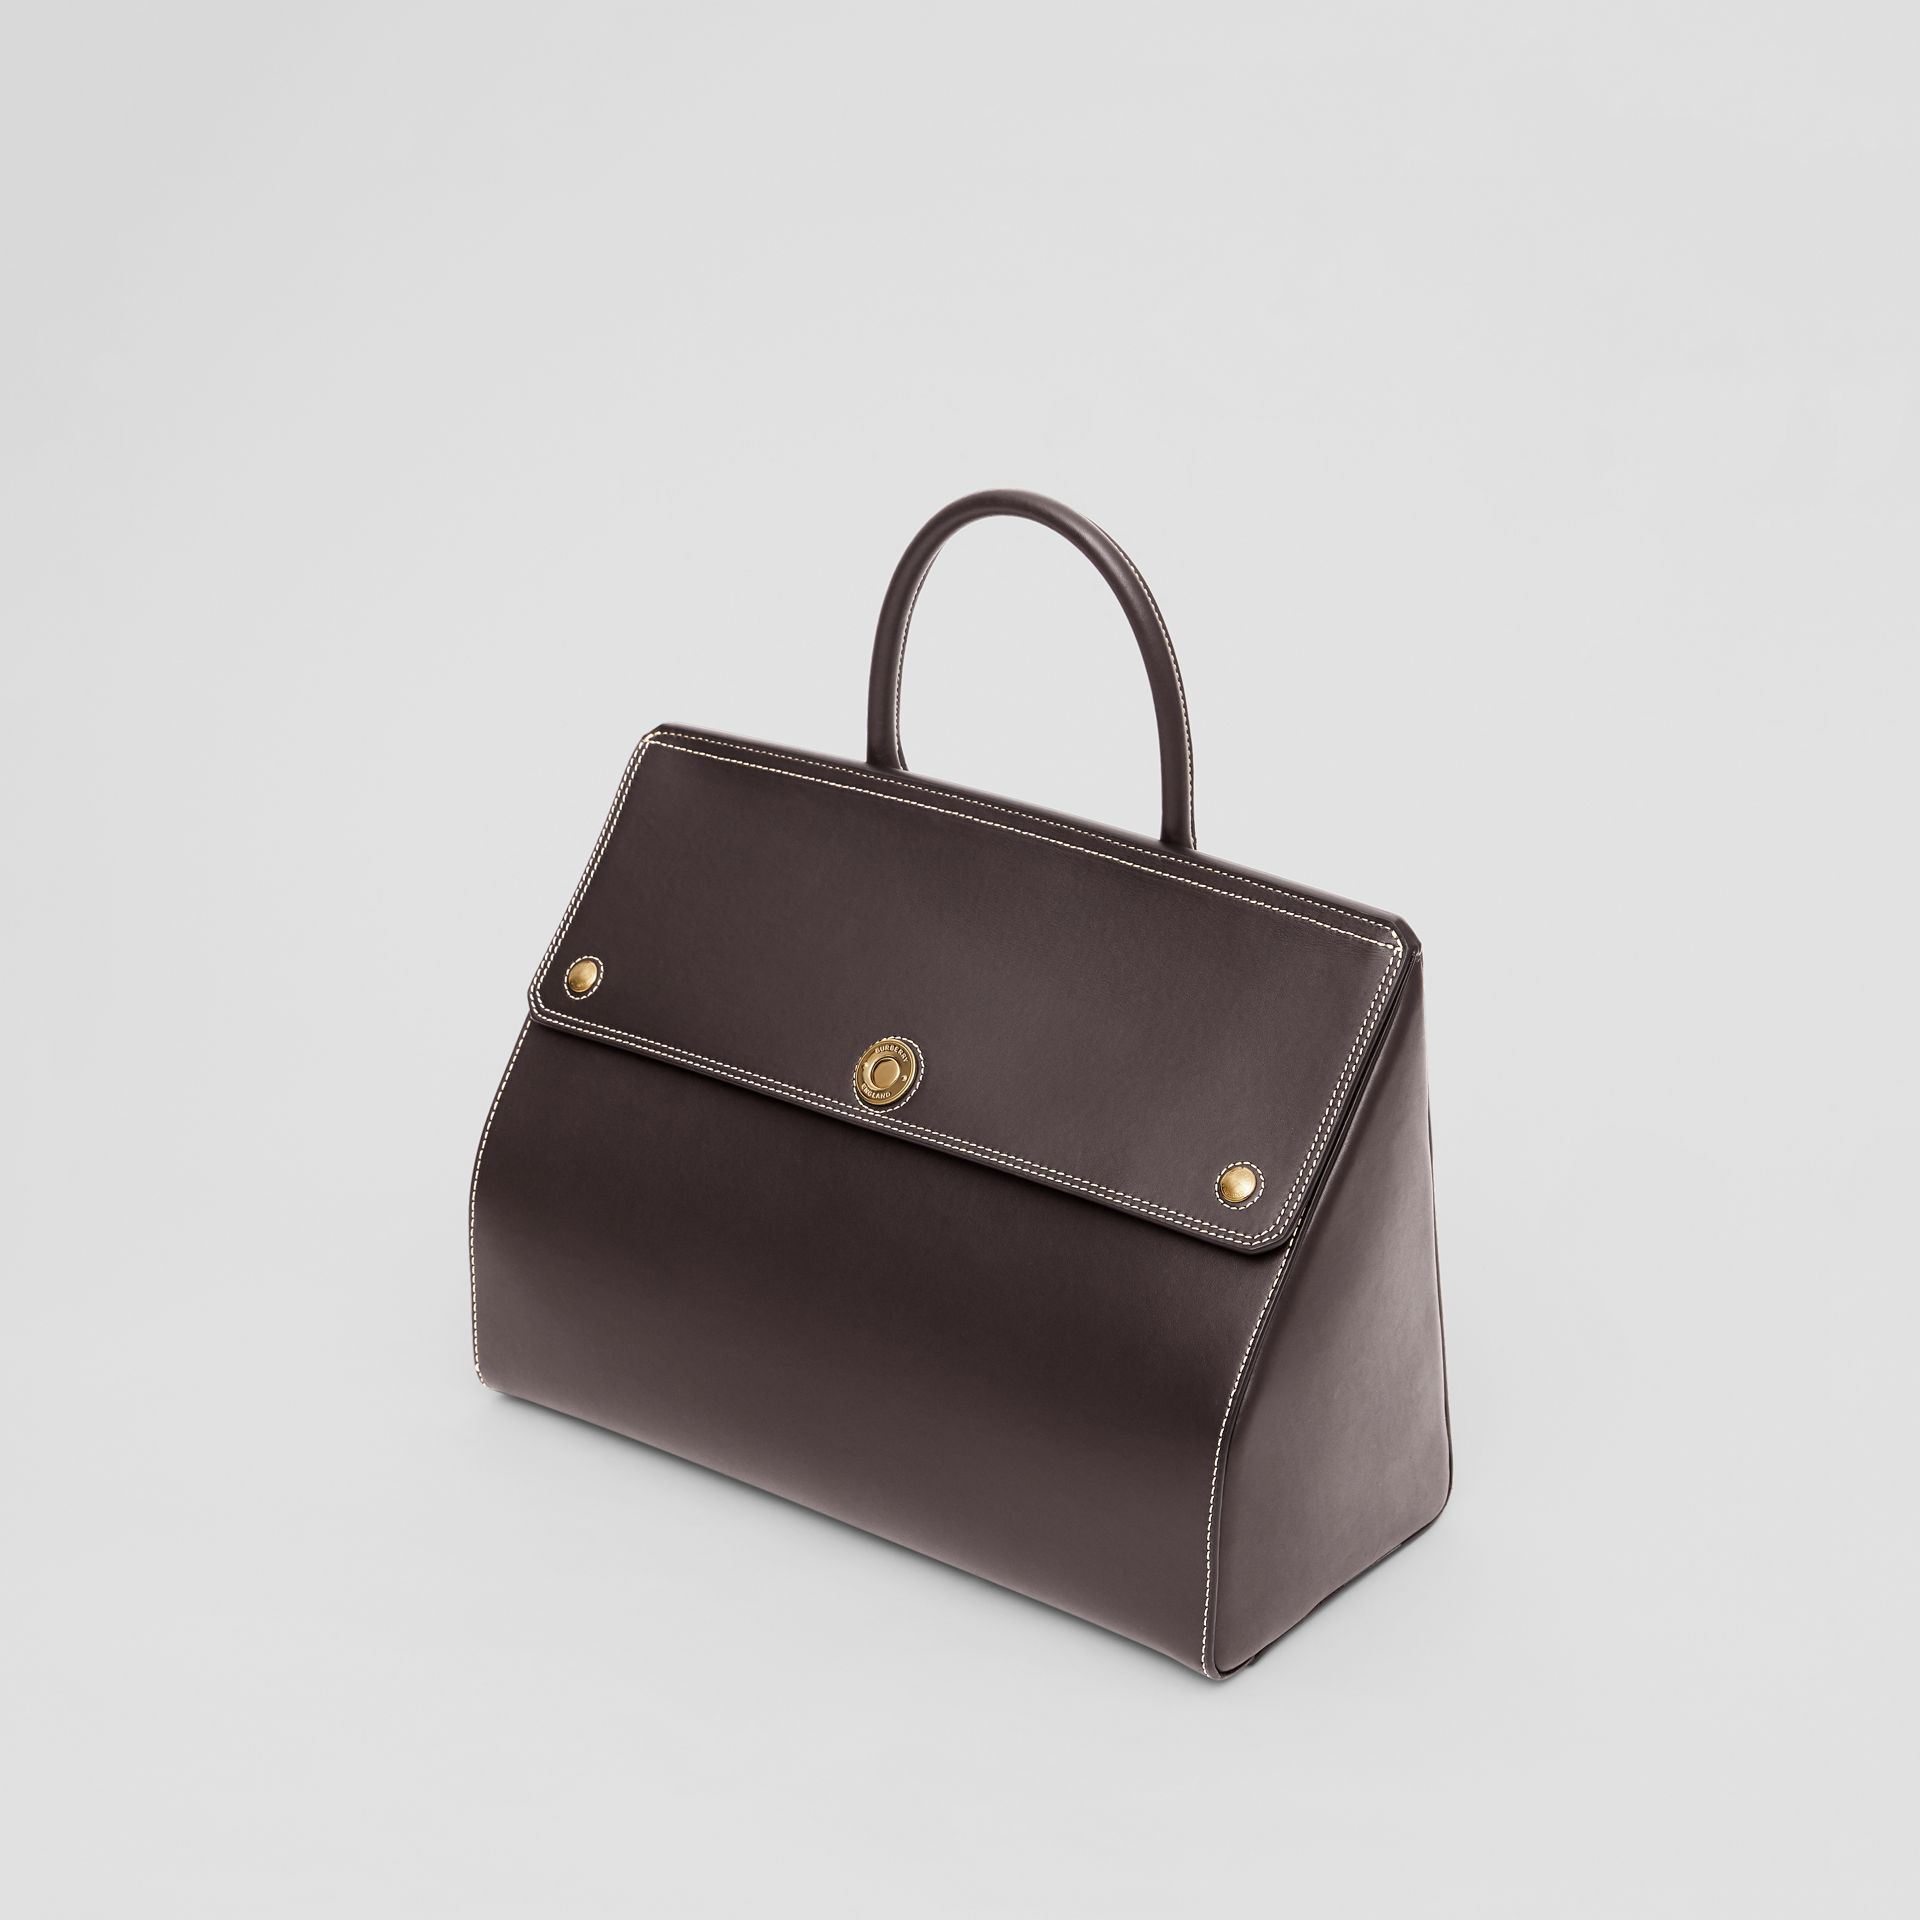 Medium Leather Elizabeth Bag in Coffee - Women | Burberry - gallery image 3